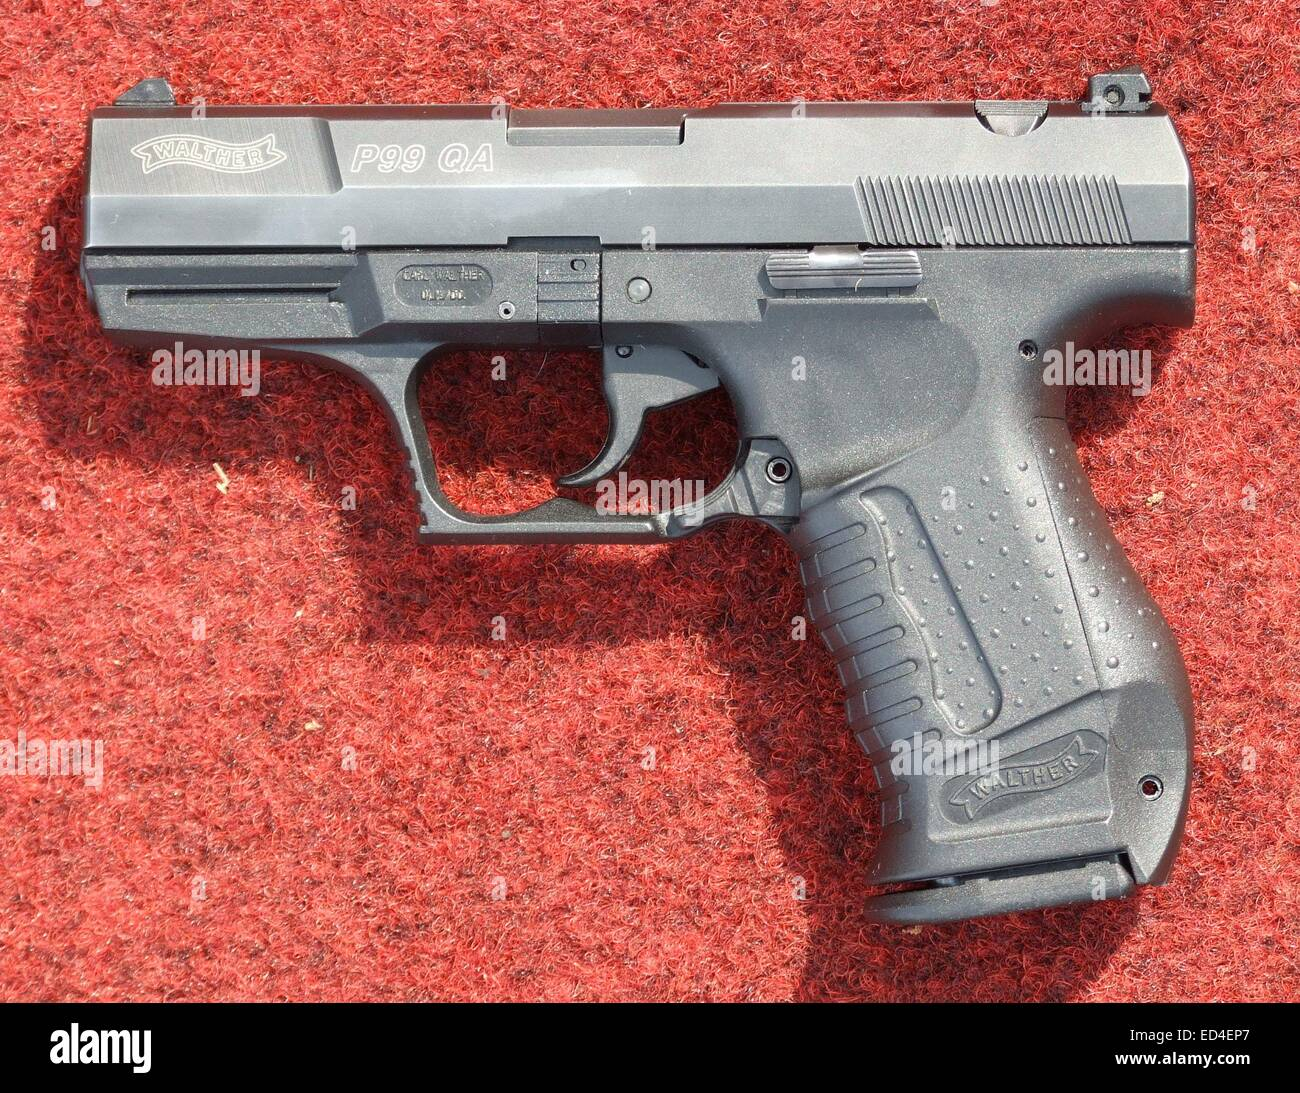 Walther P99 (QA trigger) caliber 9 mm Luger Stock Photo